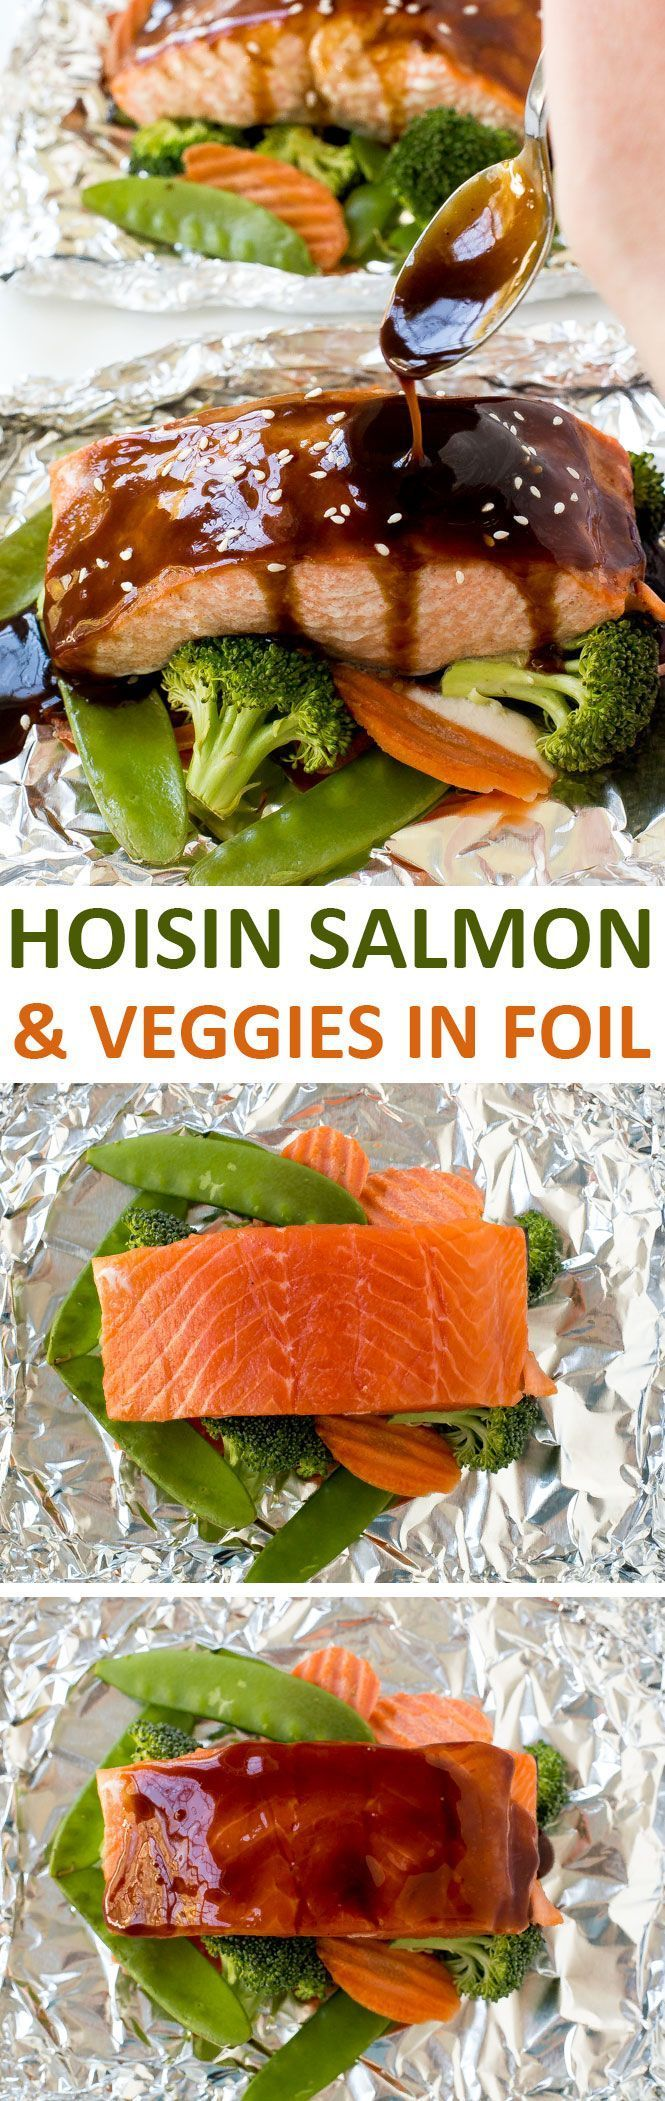 Hoisin Glazed Salmon and Veggies in foil baked to perfection and drizzled with an amazing 3 ingredient hoisin sauce!   chefsavvy.com #recipe #salmon #seafood #hoisin #asian